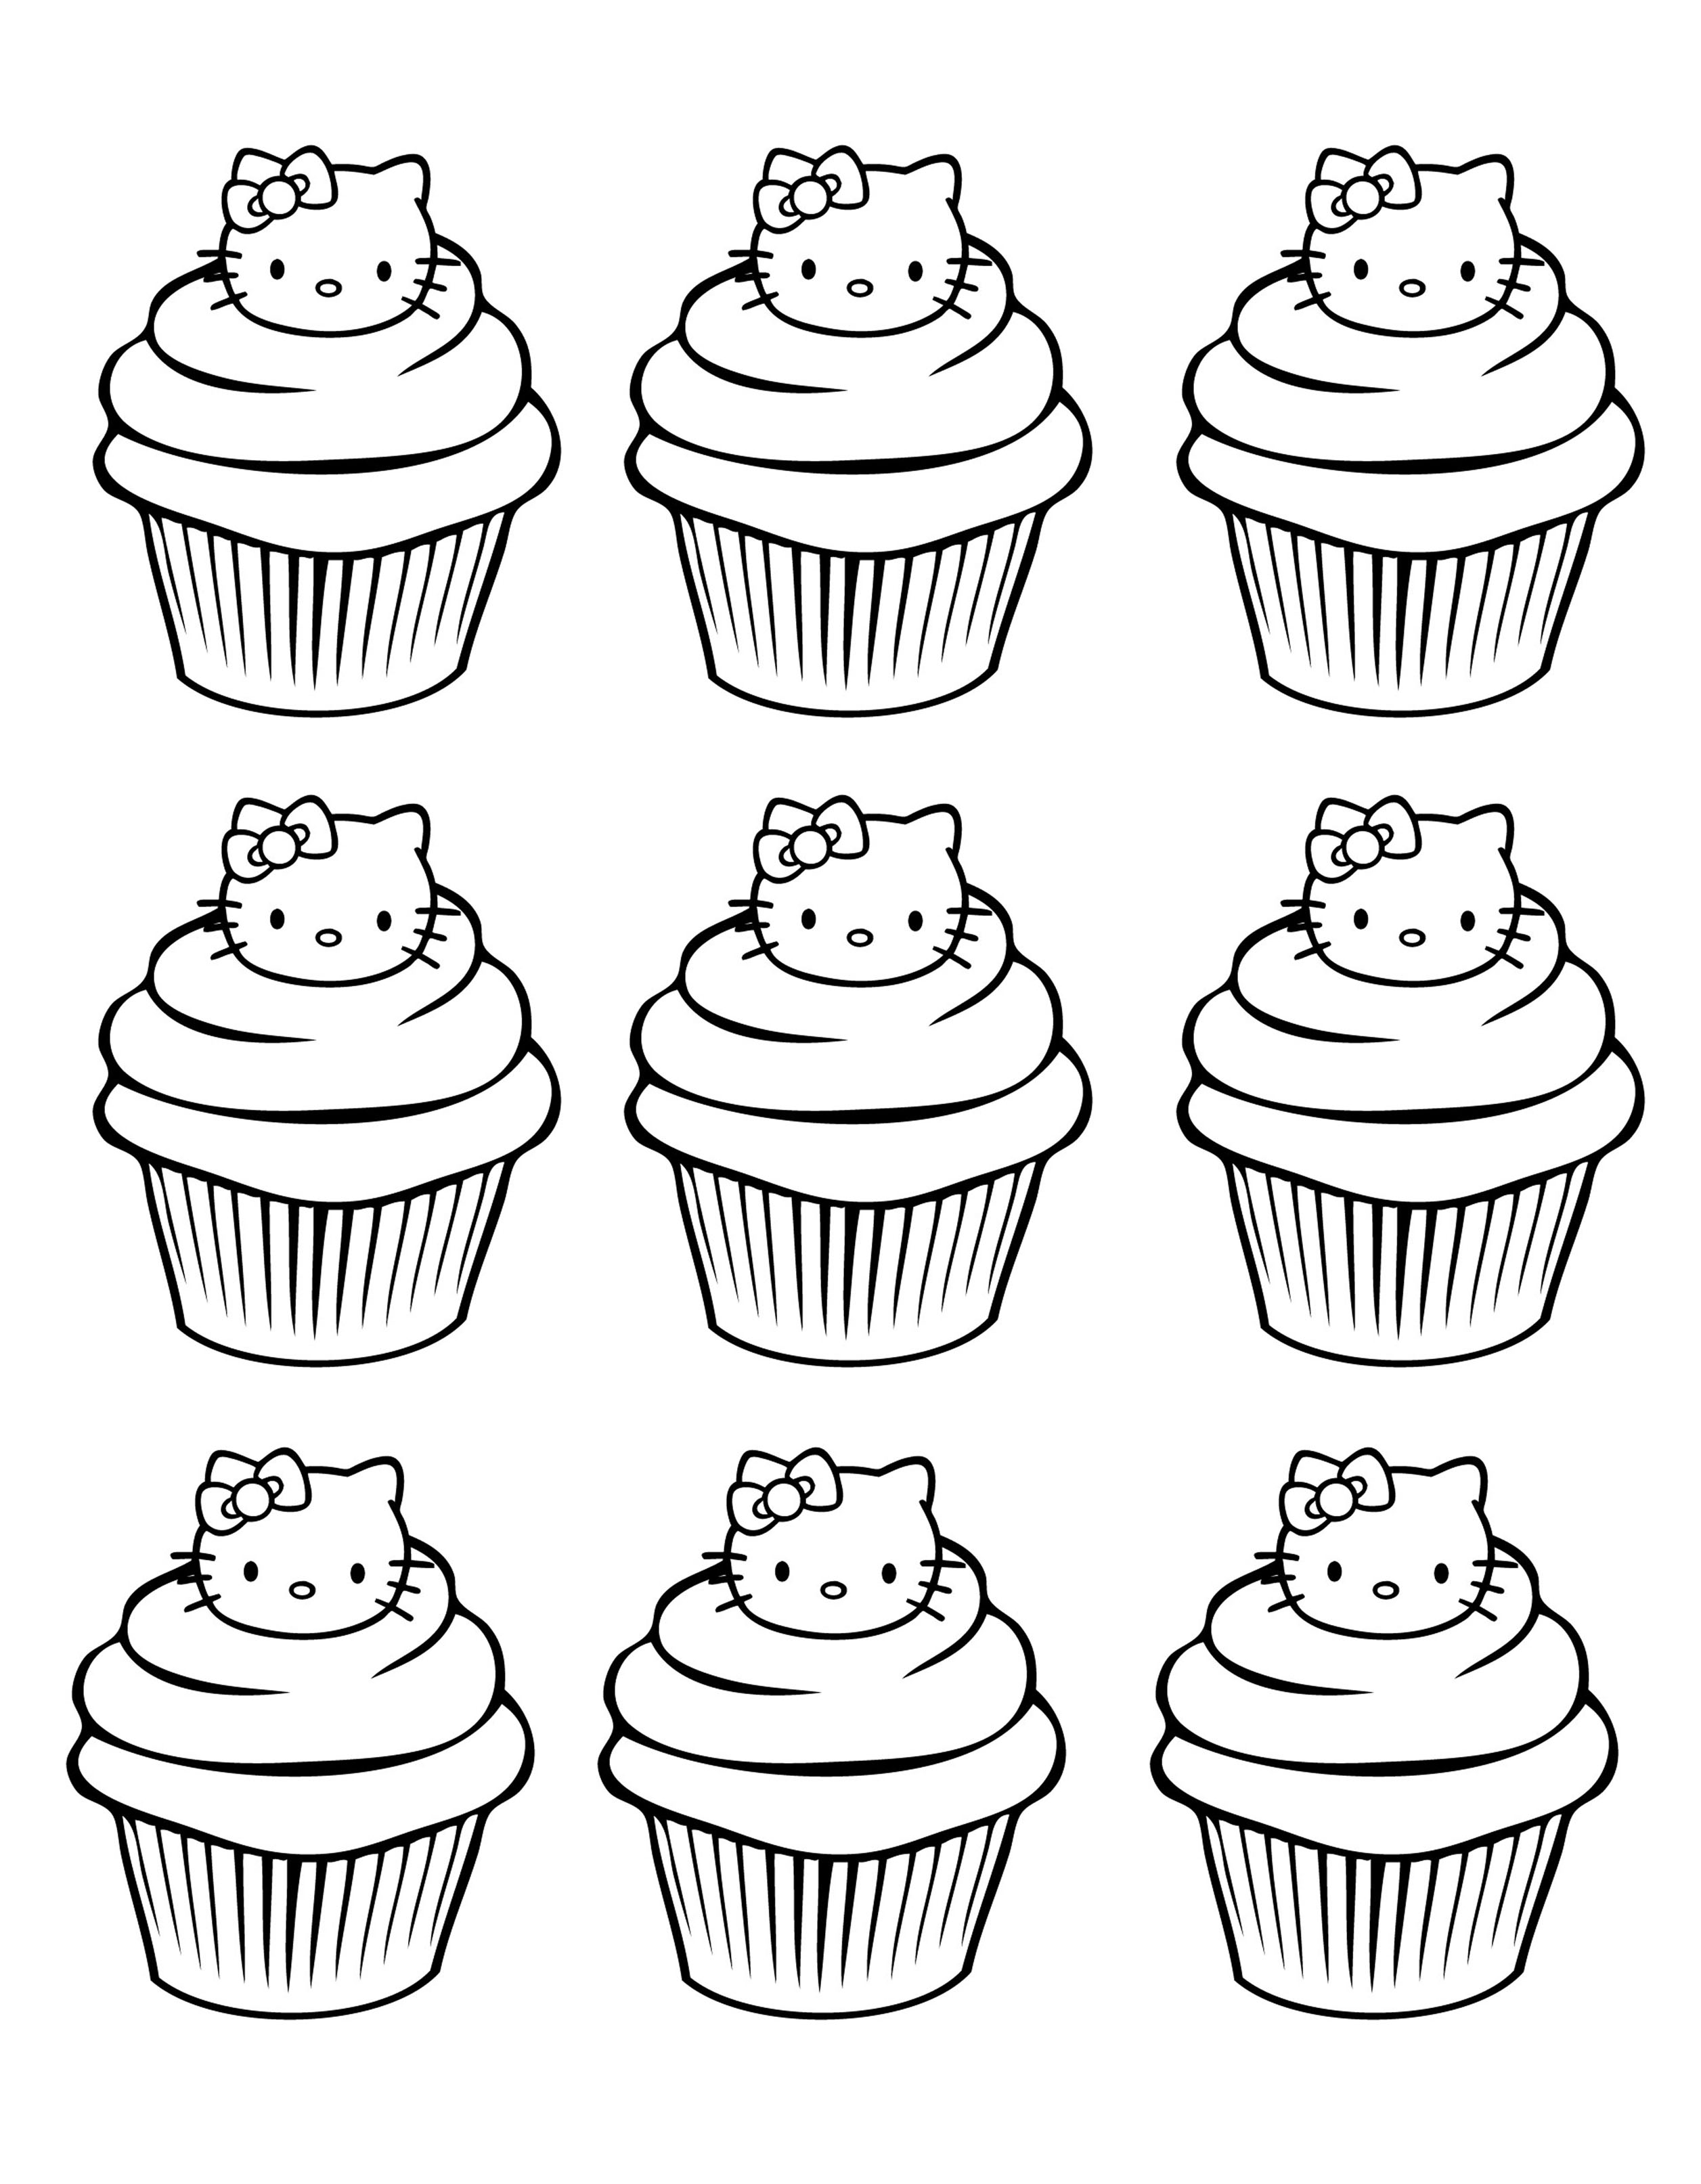 print - Cupcakes Coloring Pages